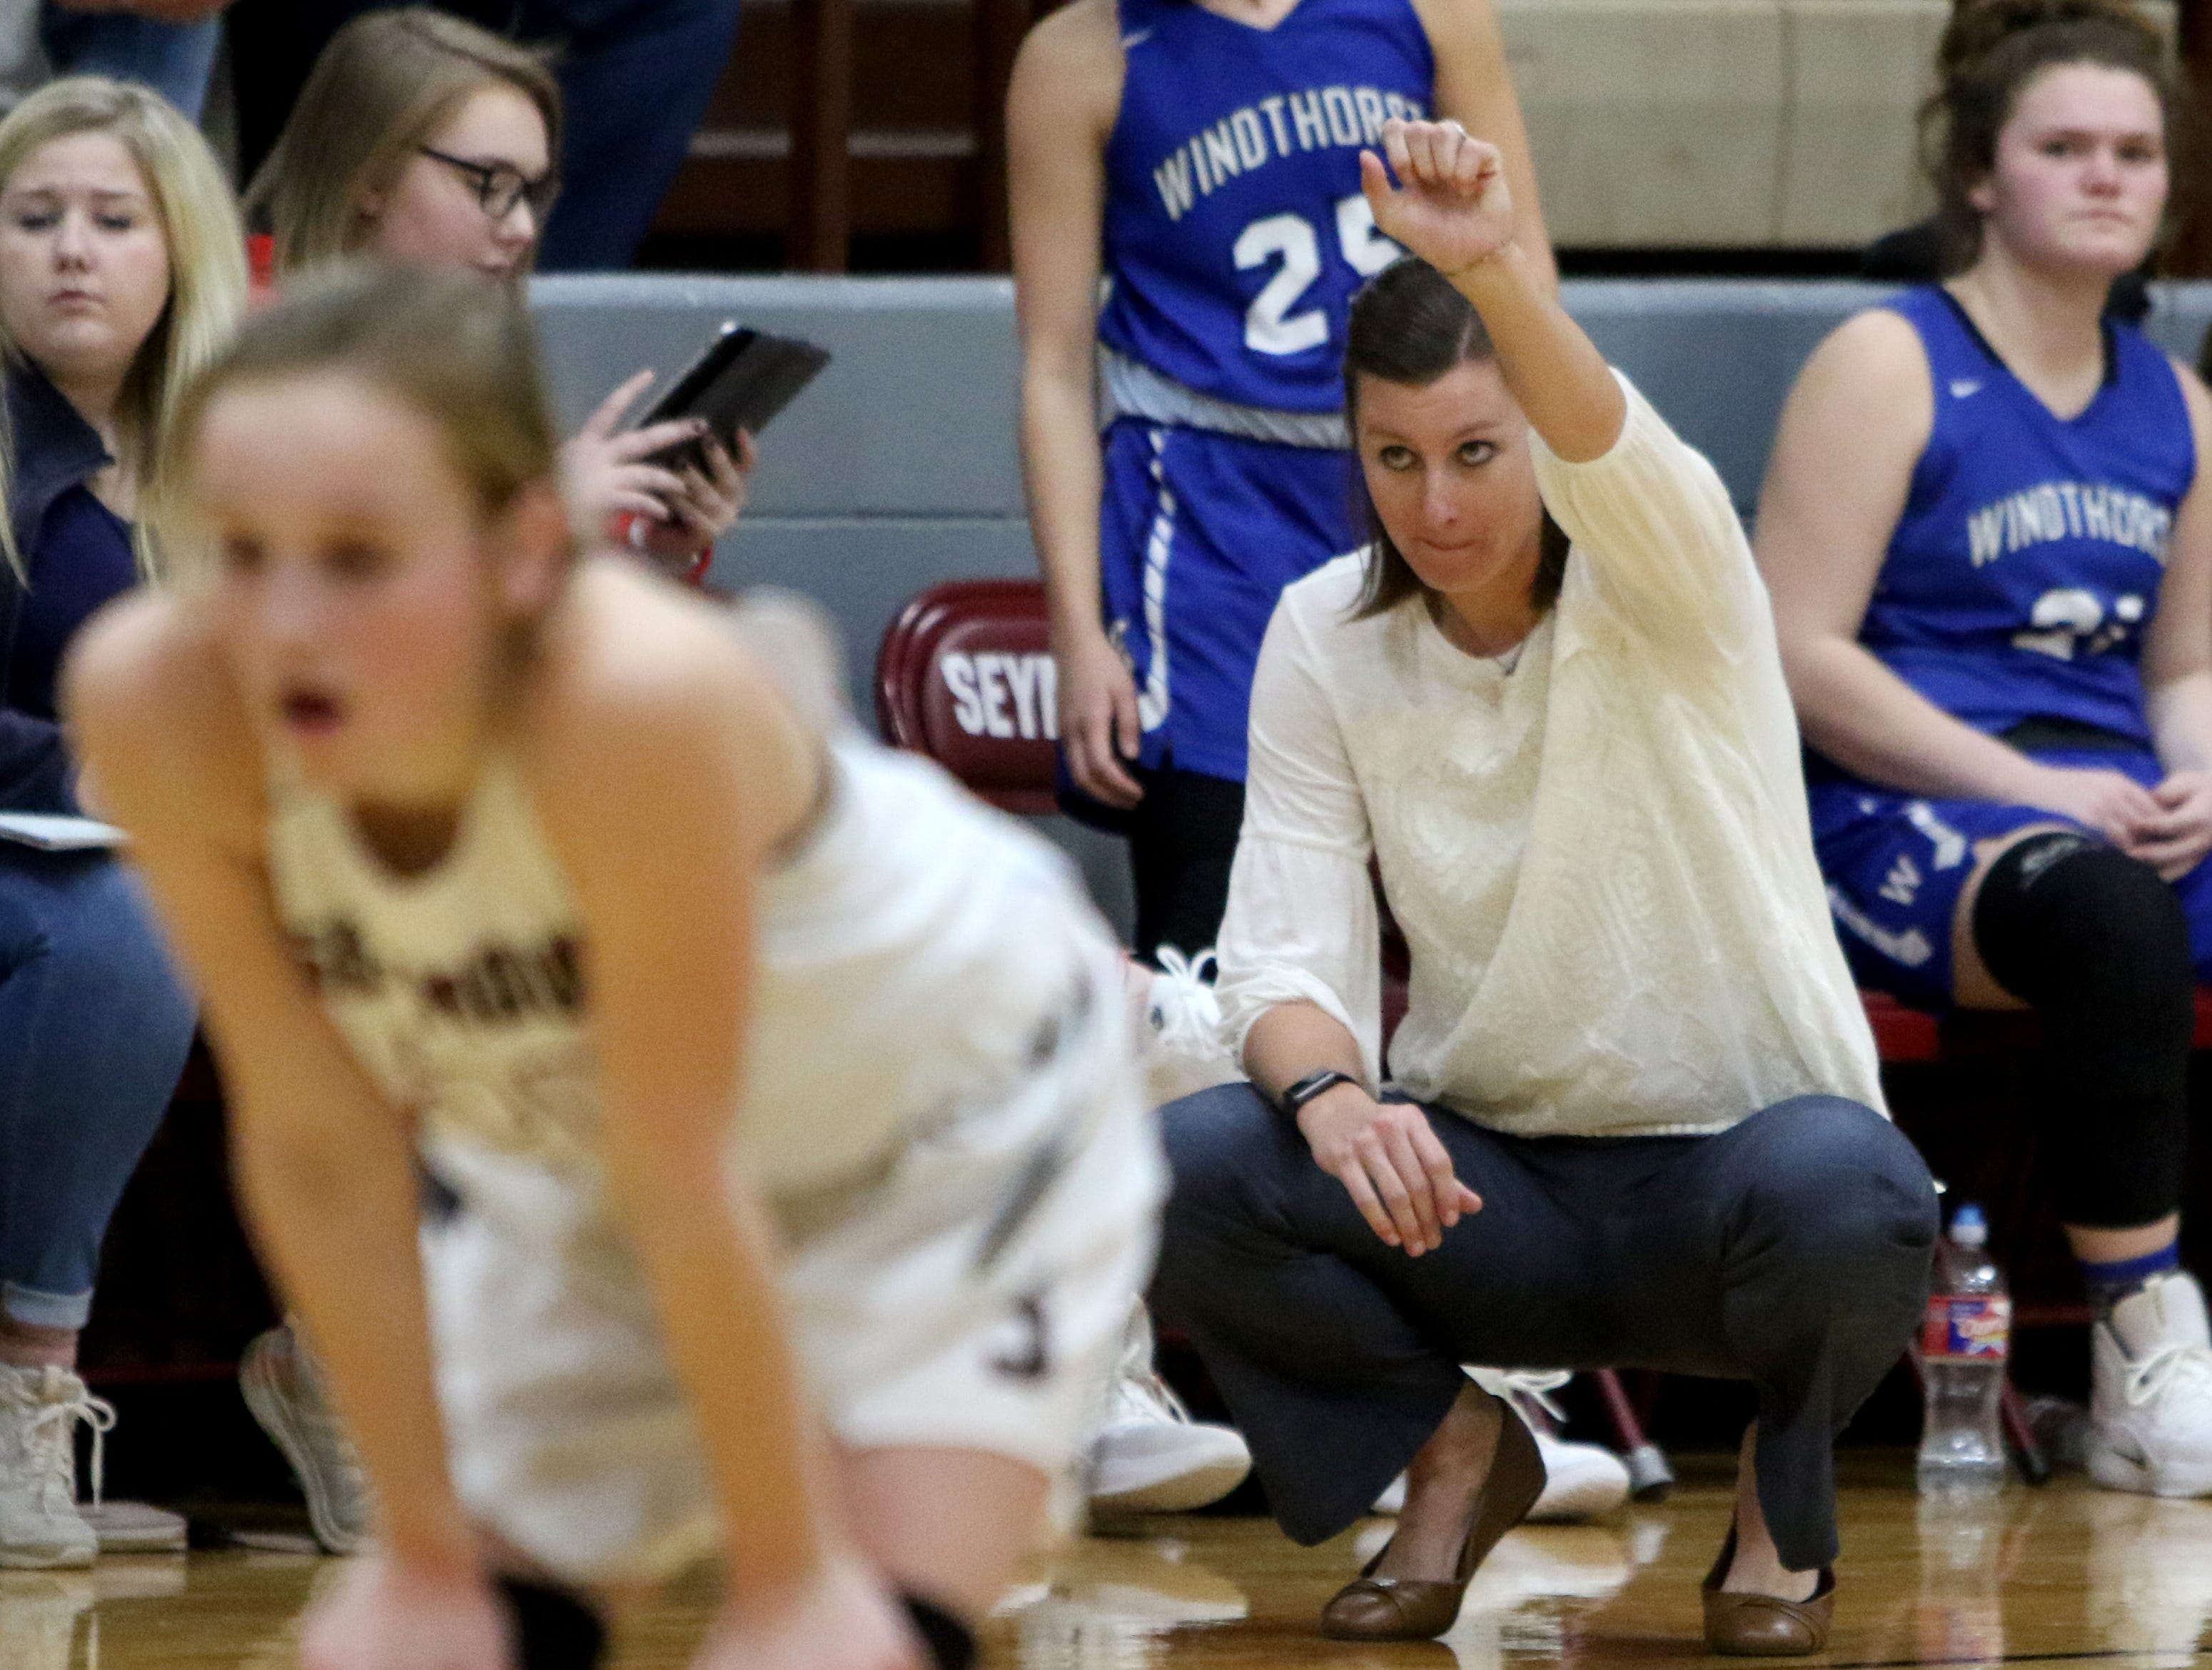 Windthorst head basketball coach Heather Stark signals to her players in the game against Seymour Tuesday, Jan.8, 2019, in Seymour.